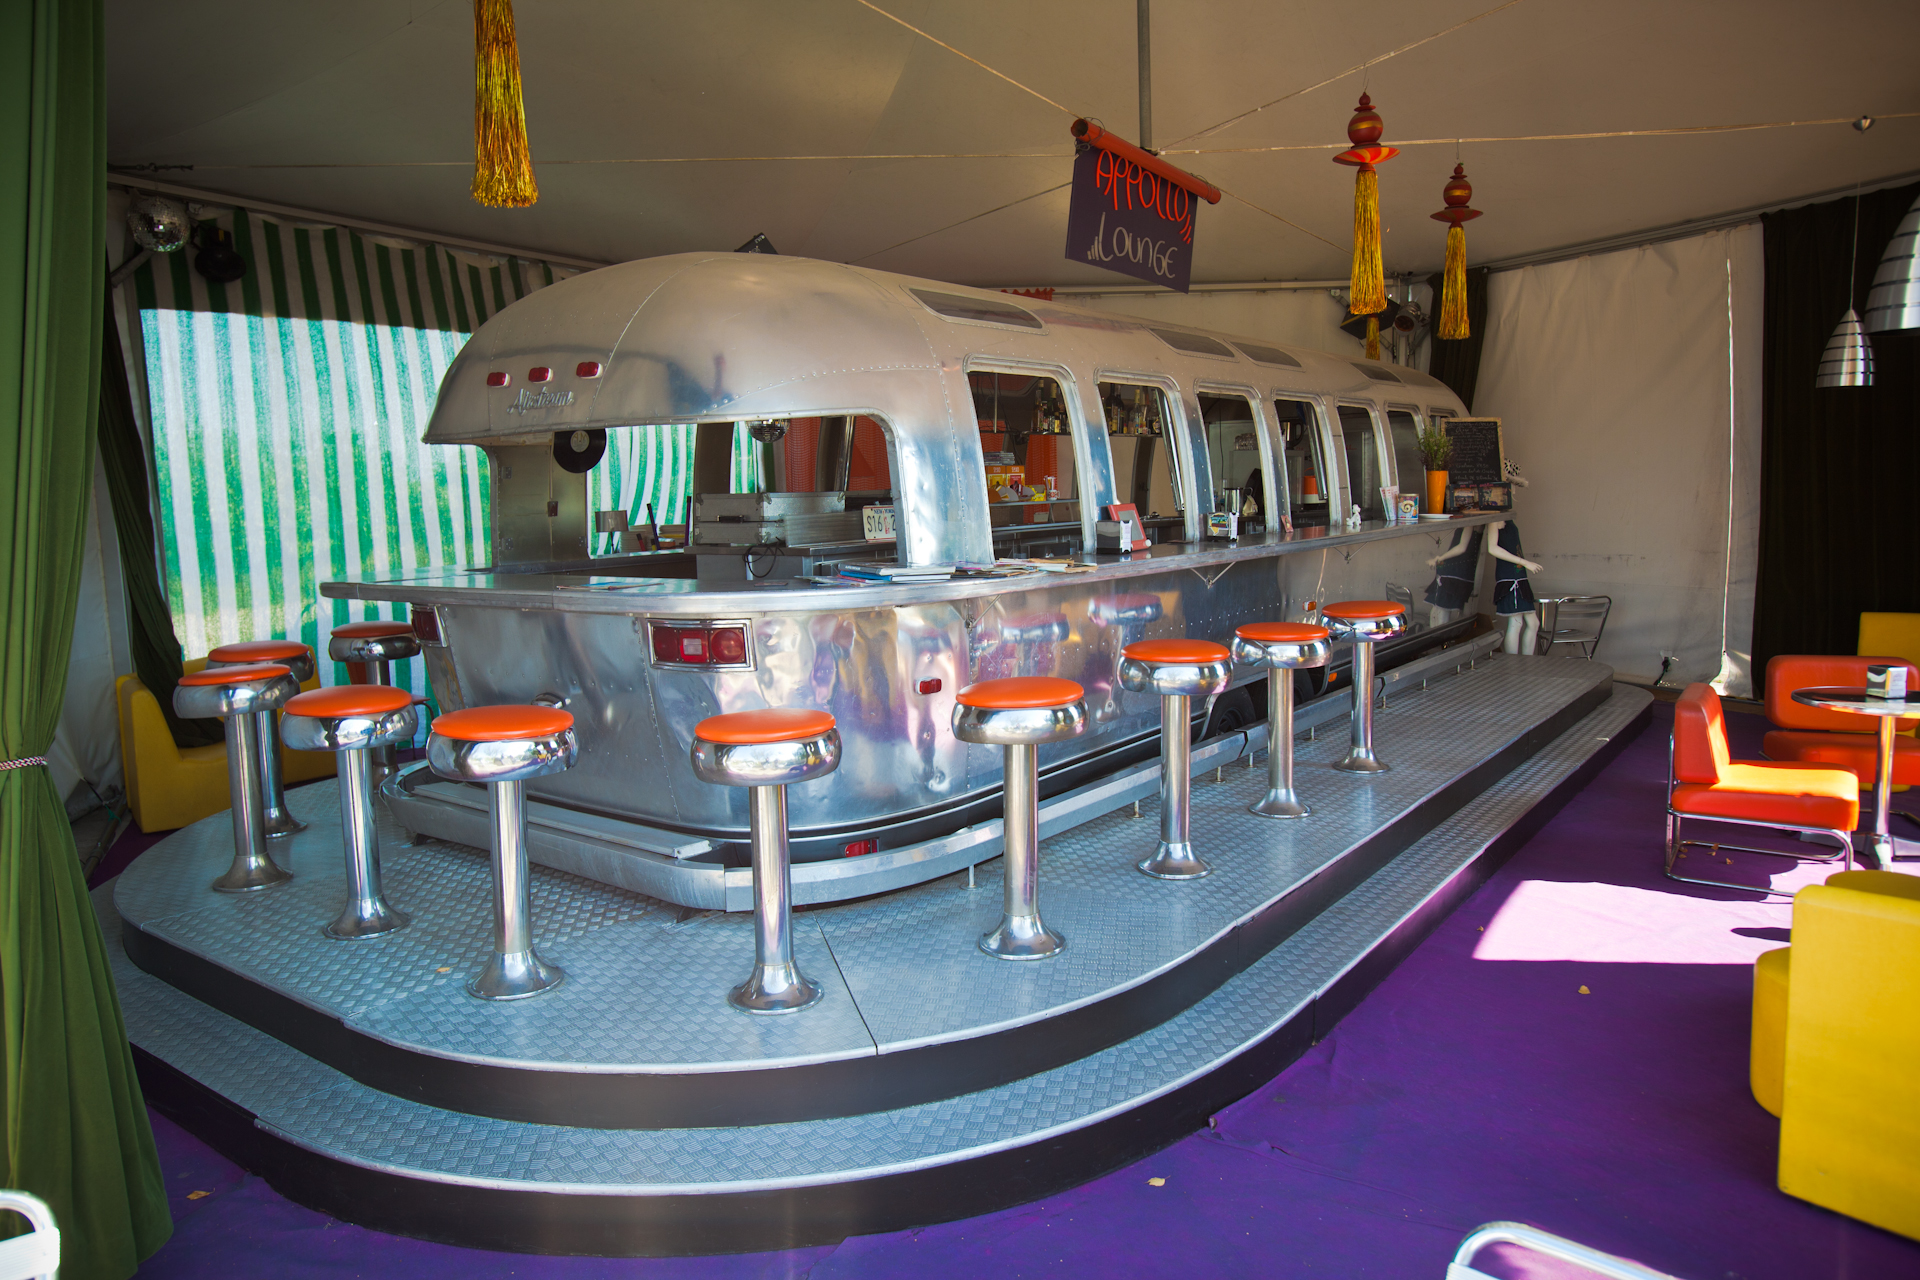 Luxury Trailer Homes >> Ten of the Best Luxury Trailer Parks in the World - TheRichest